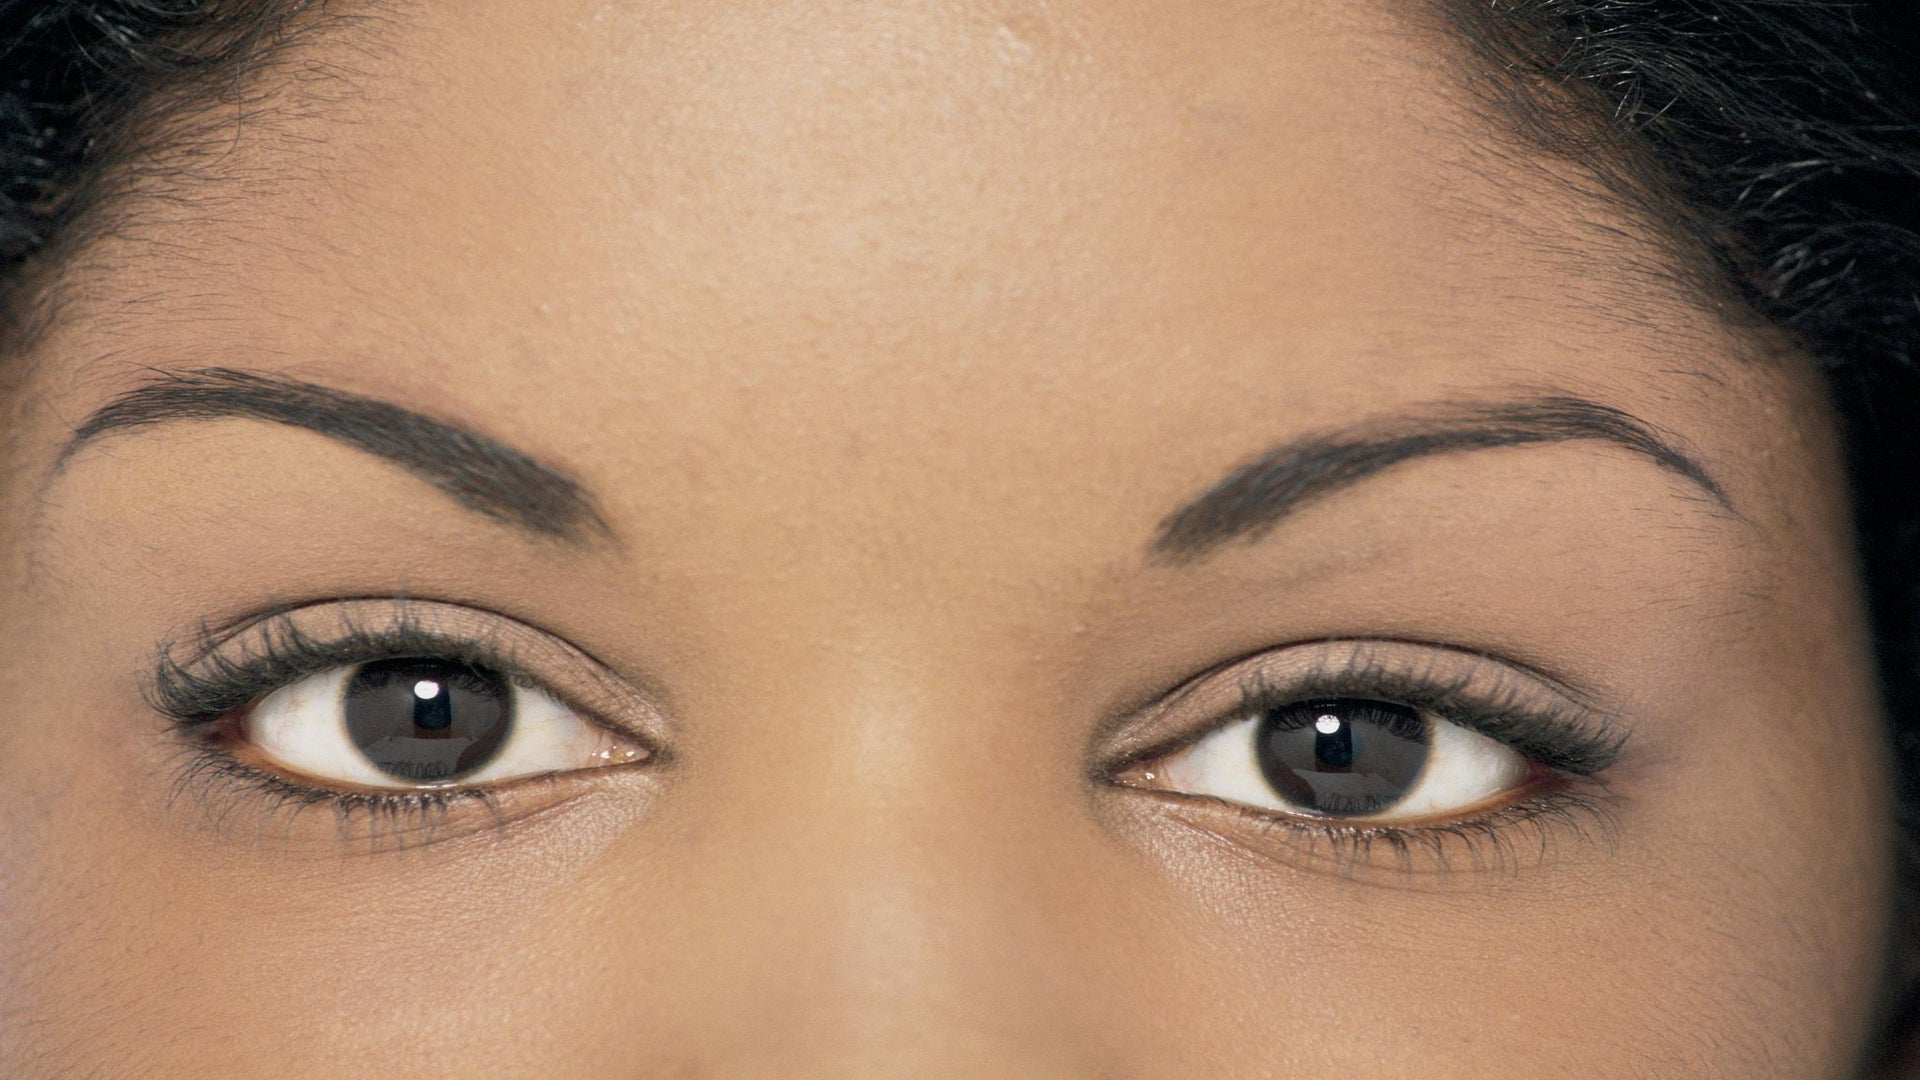 From The Pros: Will My Eyebrows Ever Grow Back?